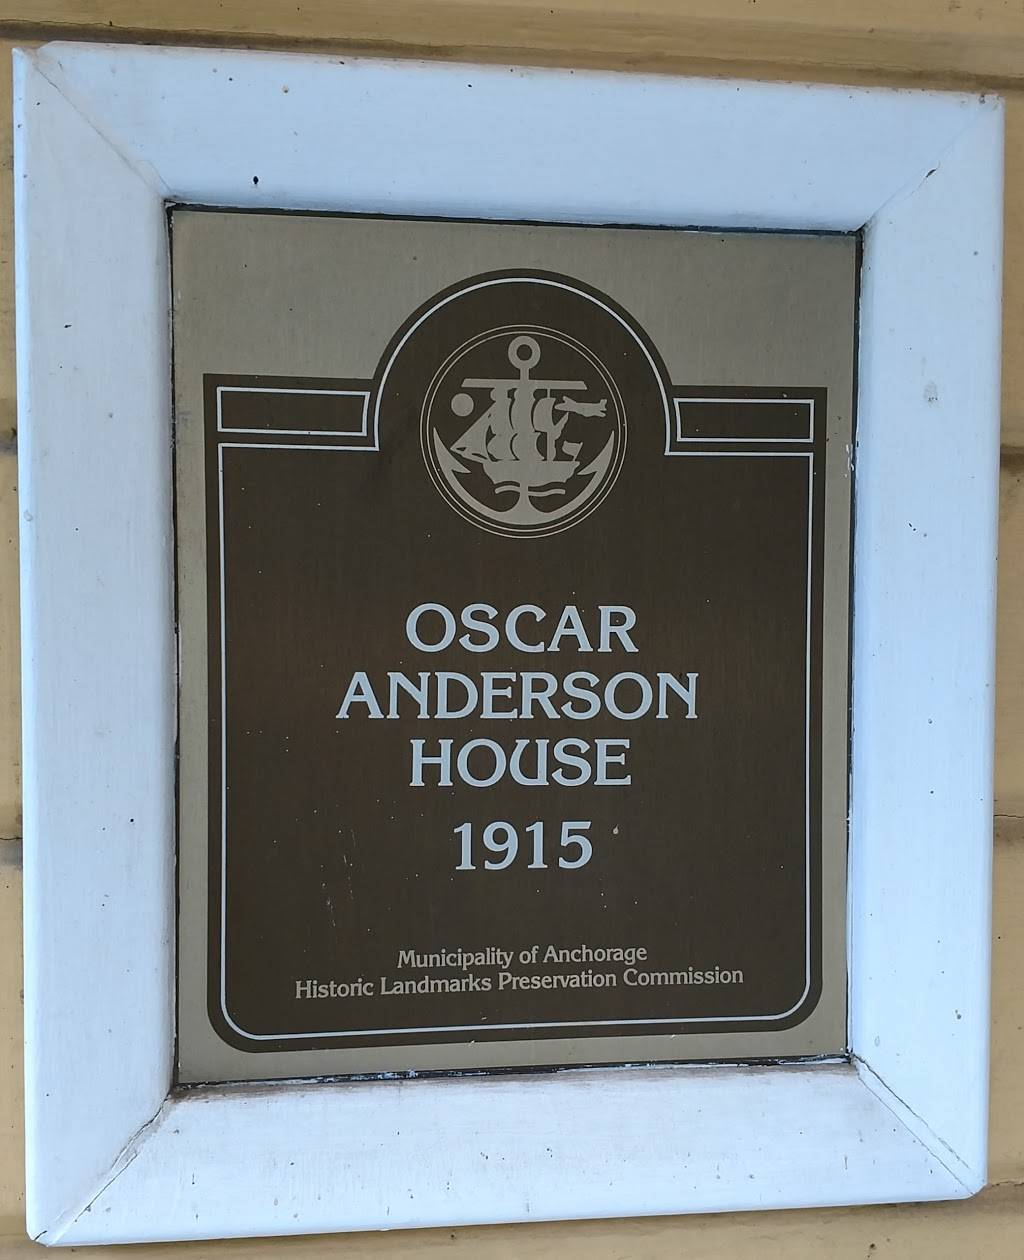 Oscar Anderson House Museum - museum  | Photo 4 of 10 | Address: 420 M St, Anchorage, AK 99501, USA | Phone: (907) 274-2336